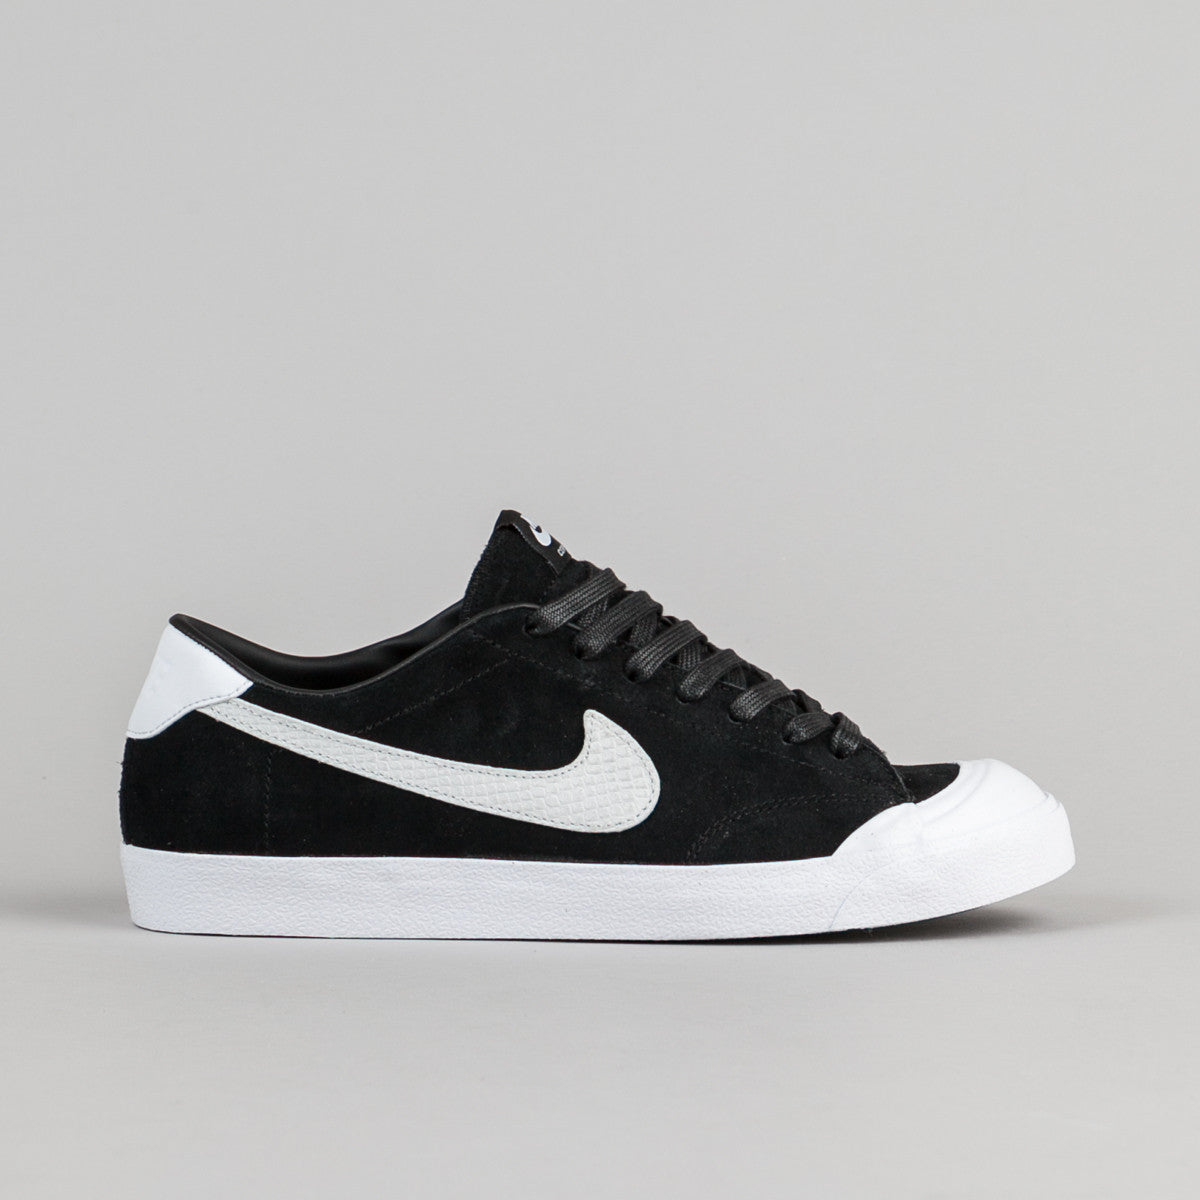 NIKE SB ALL COURT CK QS black white